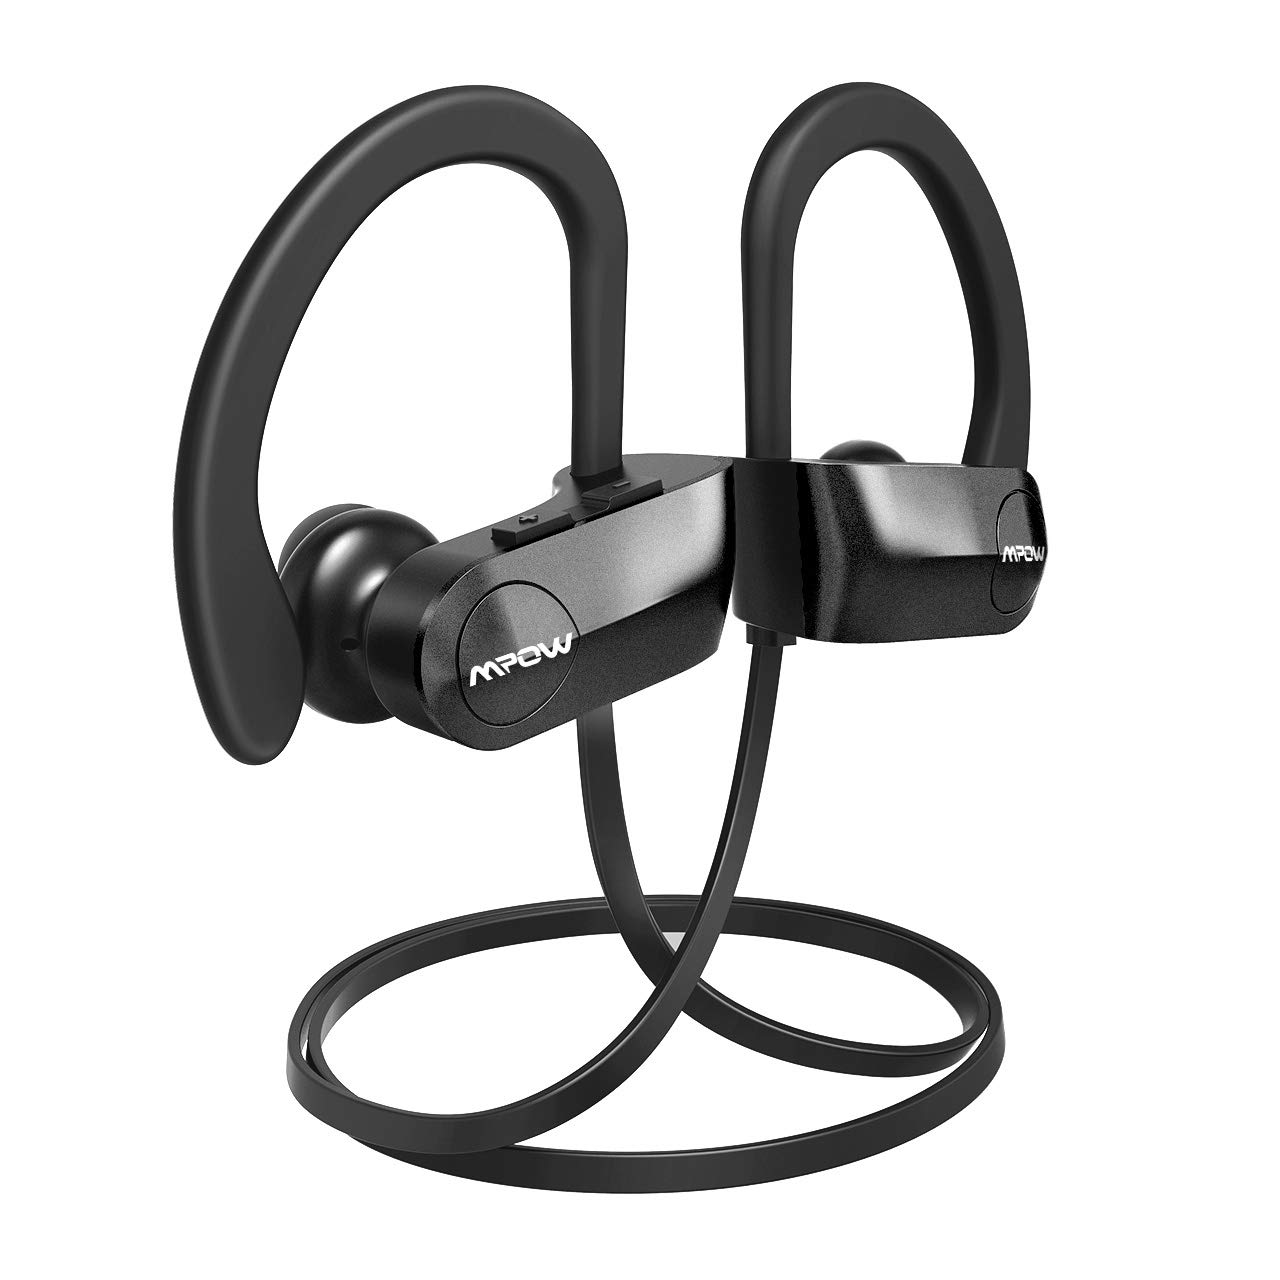 Mpow Bluetooth Headphones Waterproof Cancelling